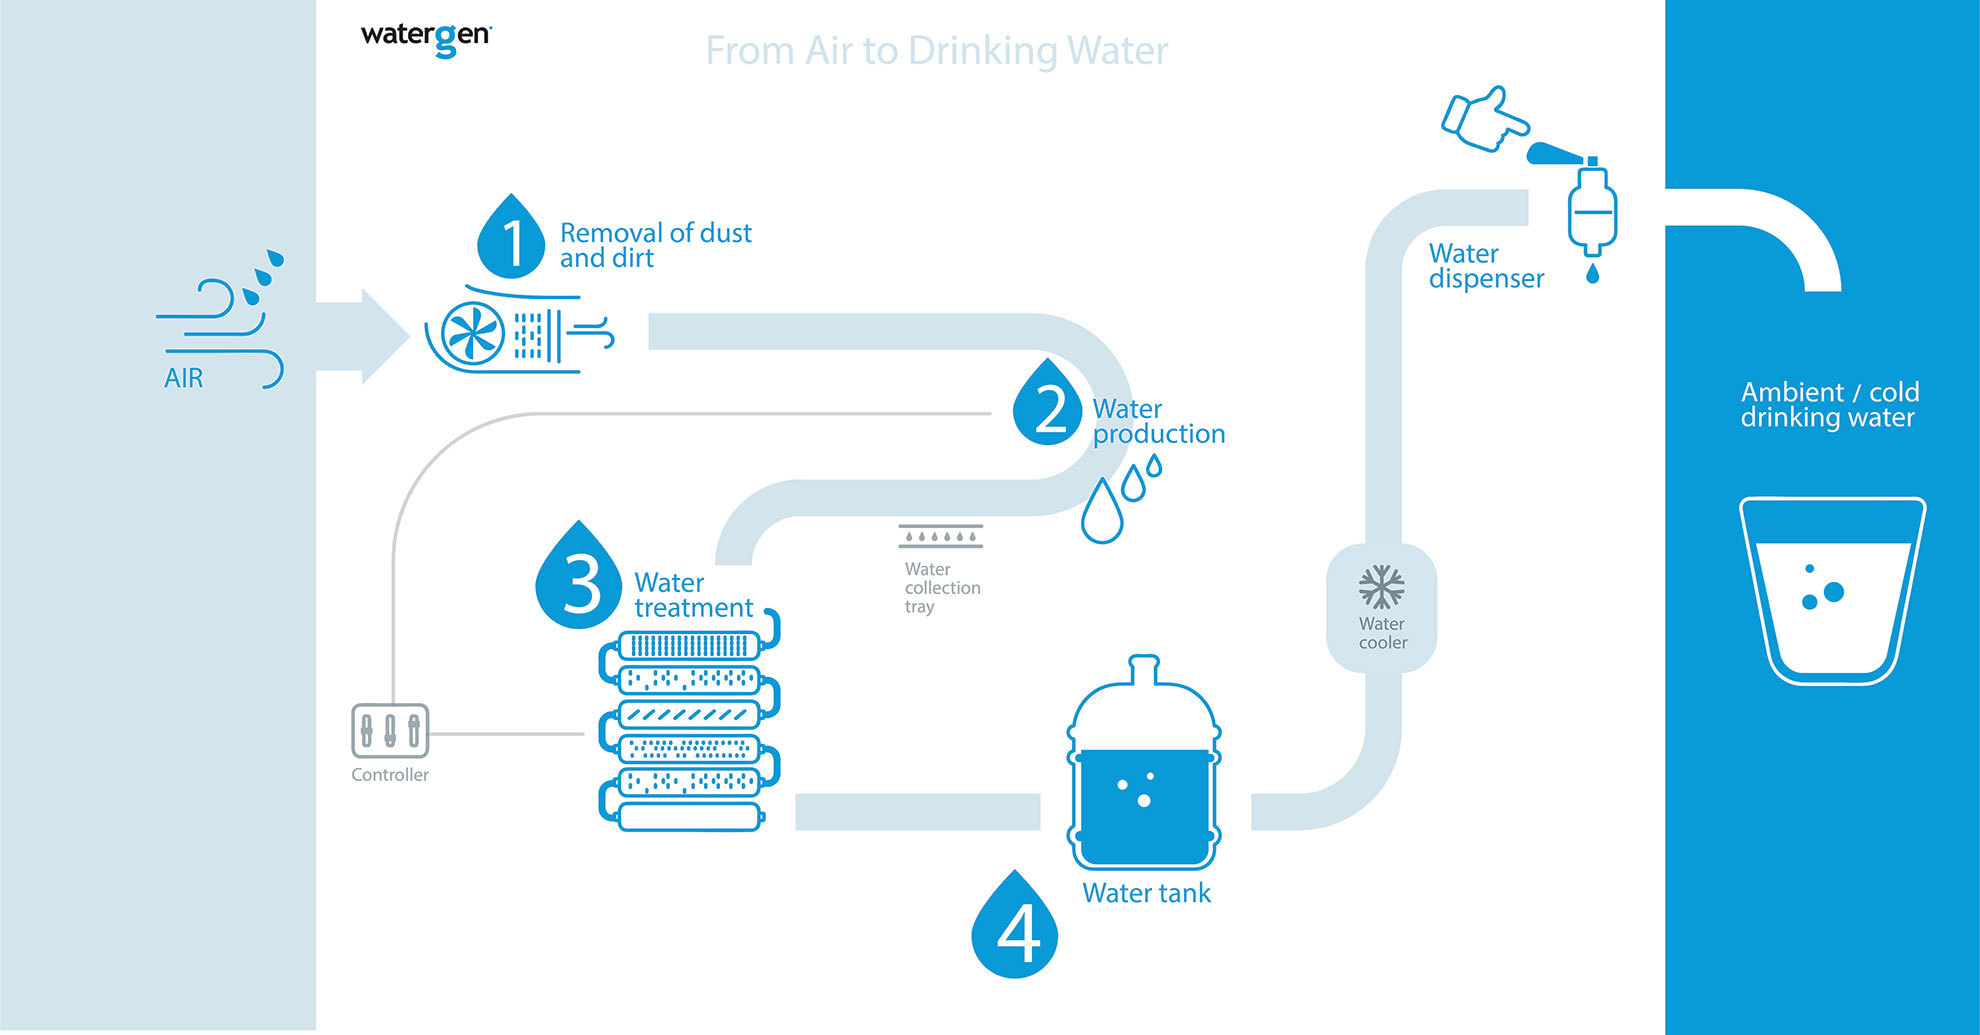 Creating Clean Water From Air